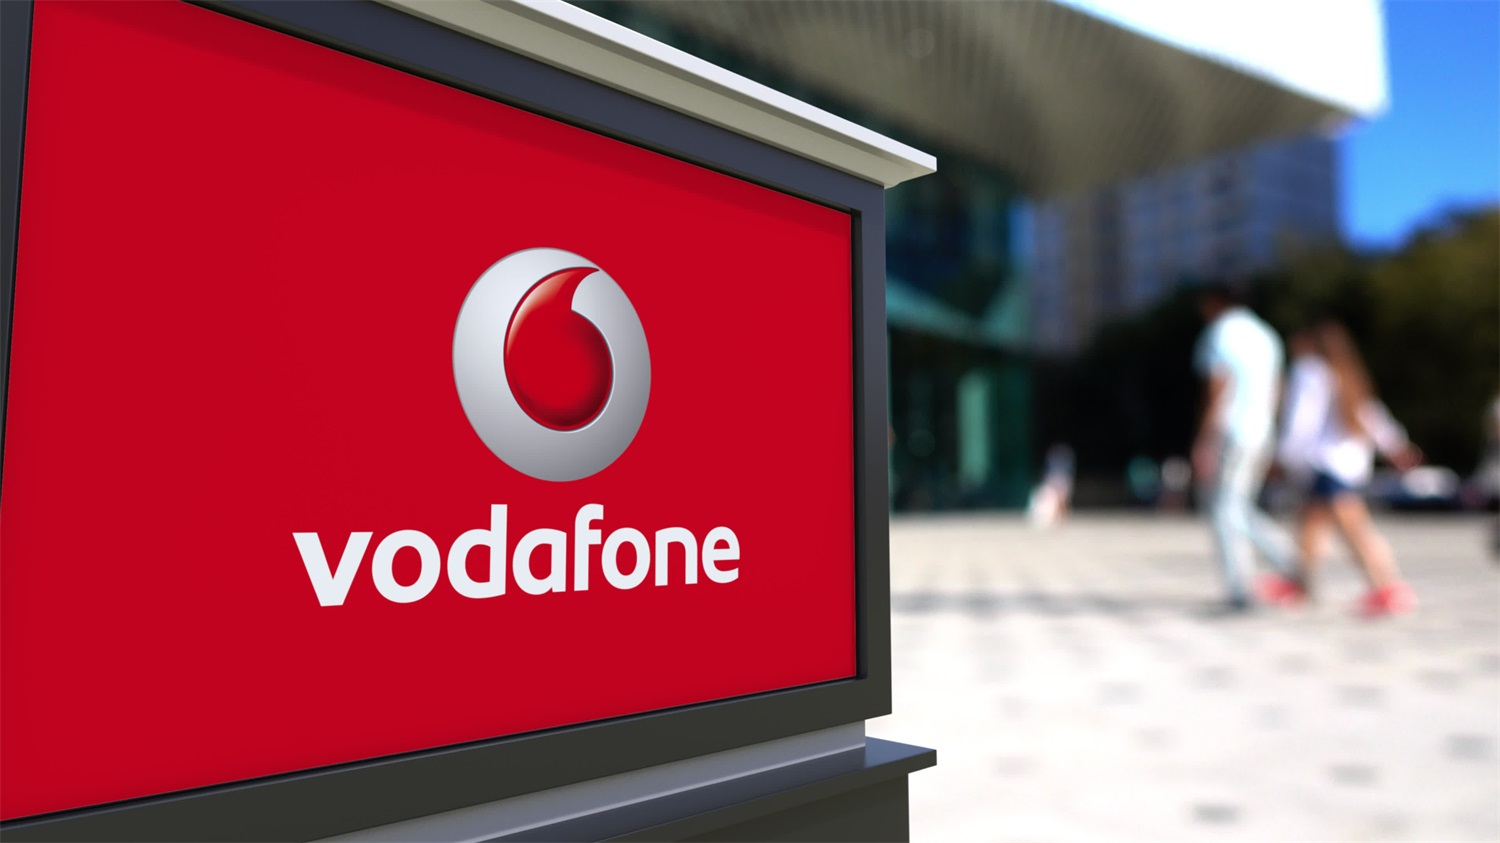 uCloudlink Extends Long-standing Partnership with Vodafone